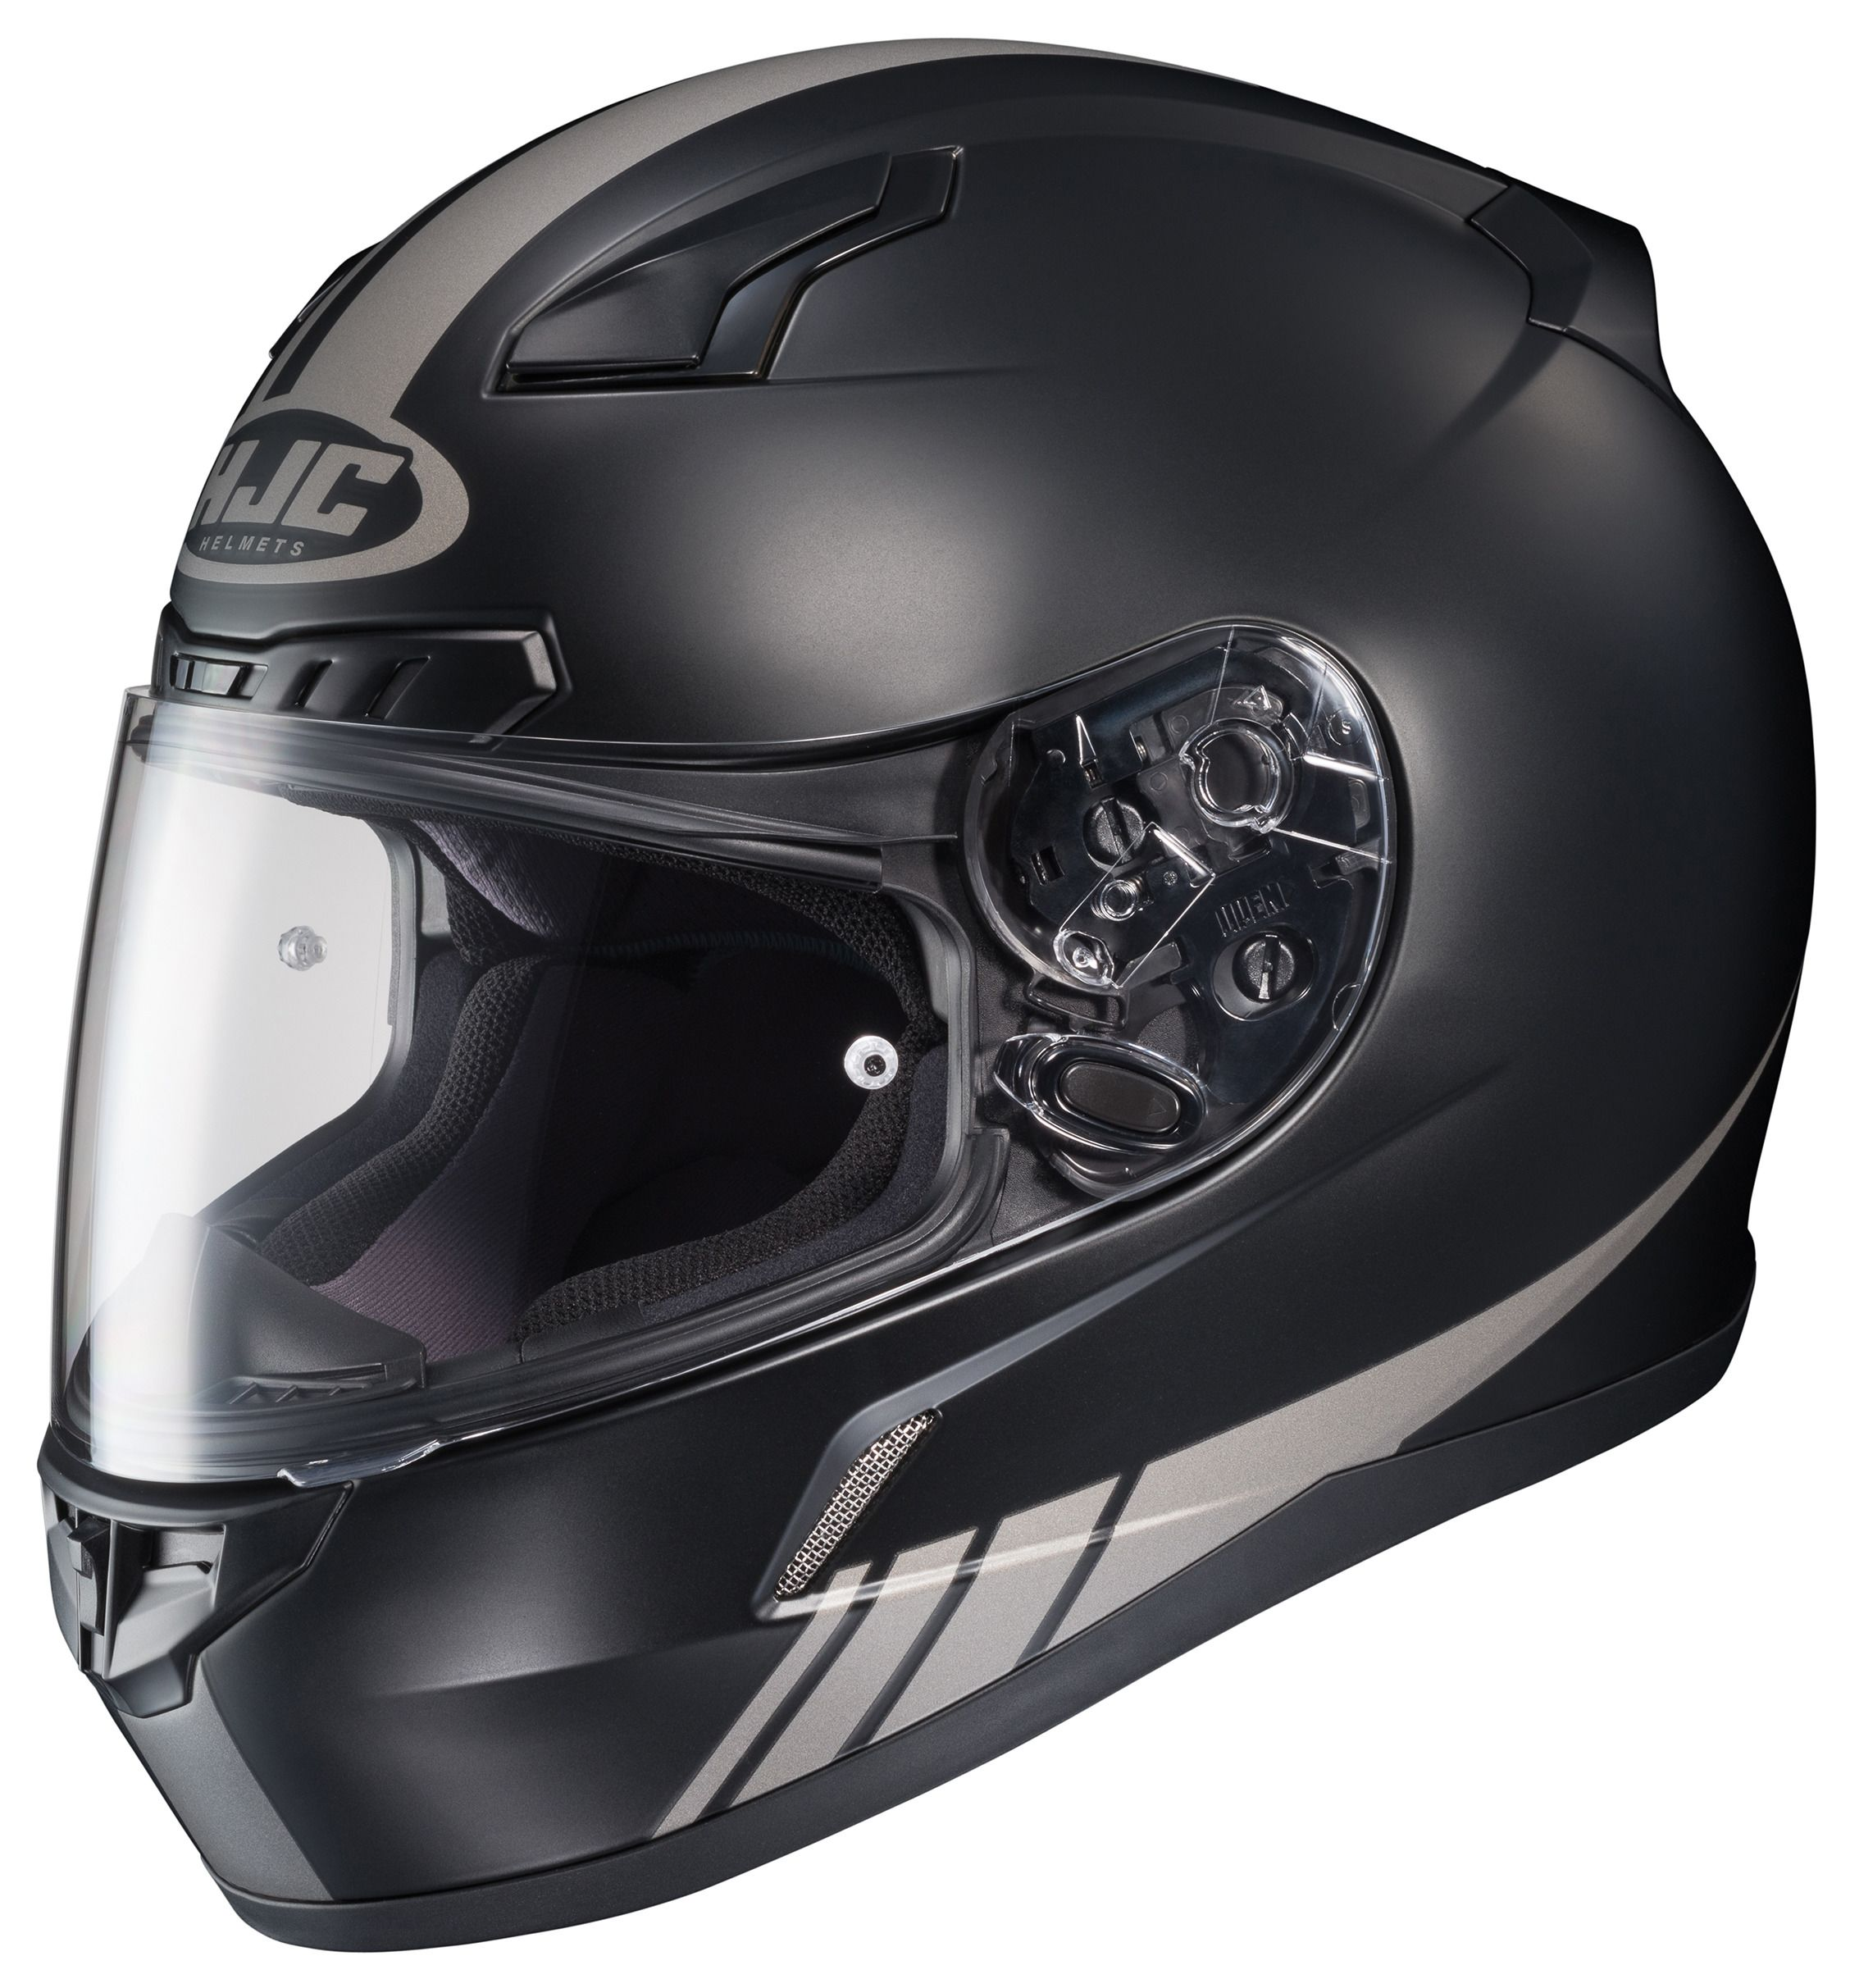 helmet hjc cl streamline cl17 helmets motorcycle mc 5x face revzilla 3xl 5xl reflective motosport stripes sold snell 2xl 4xl